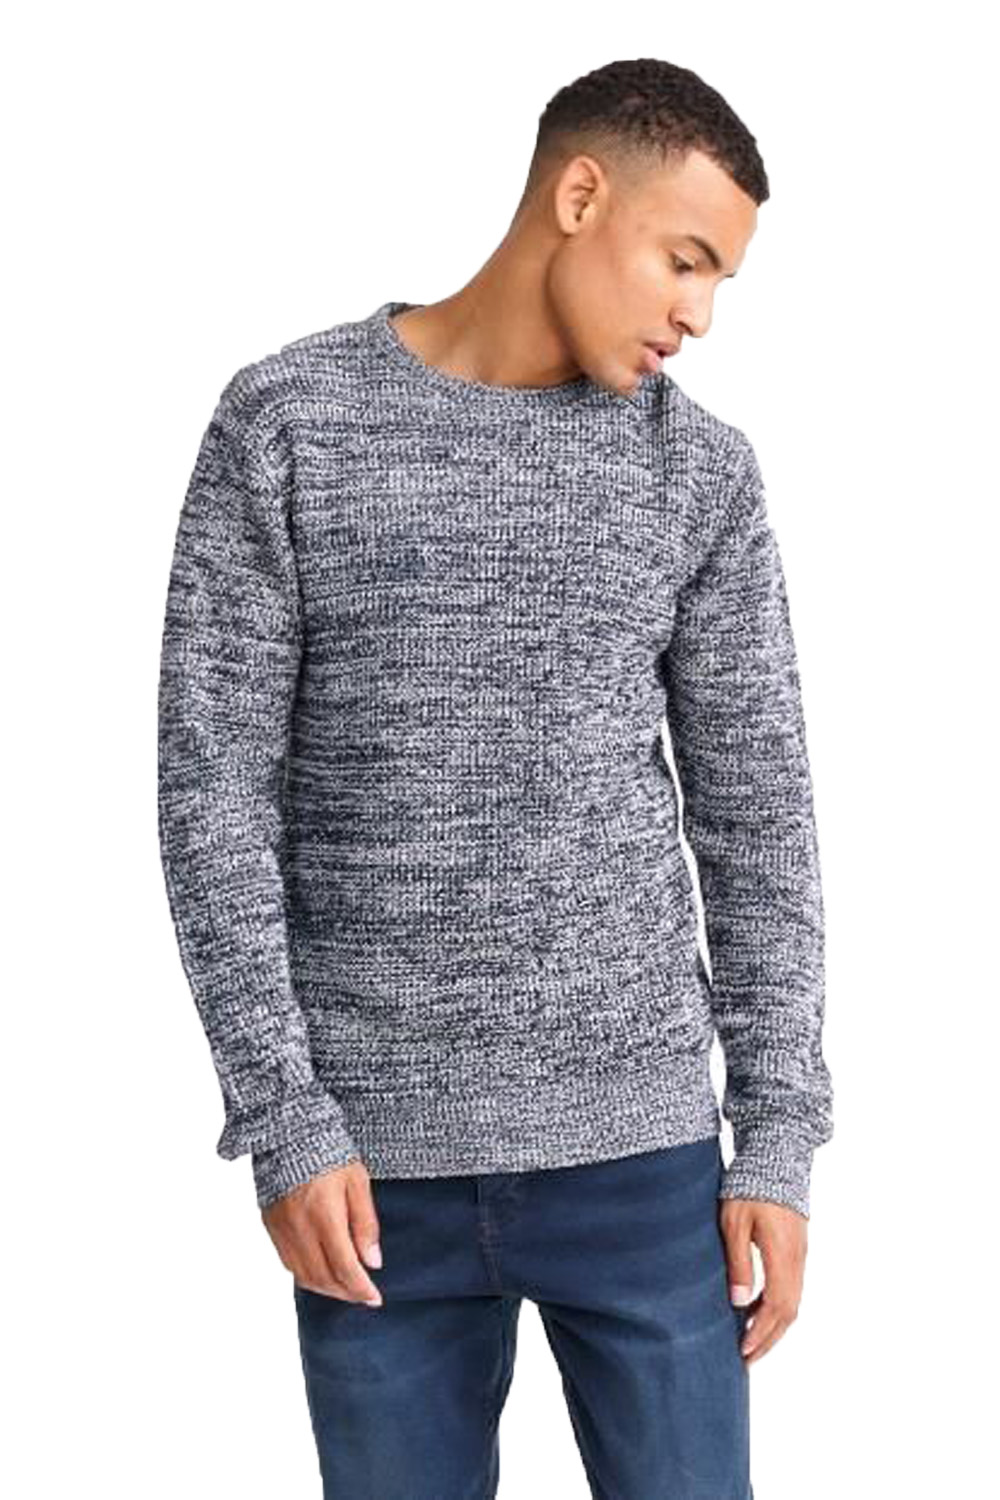 Mens Branded Criminal Cotton Crew Neck Top Larvik Text Knitted Jumper Size S-XL